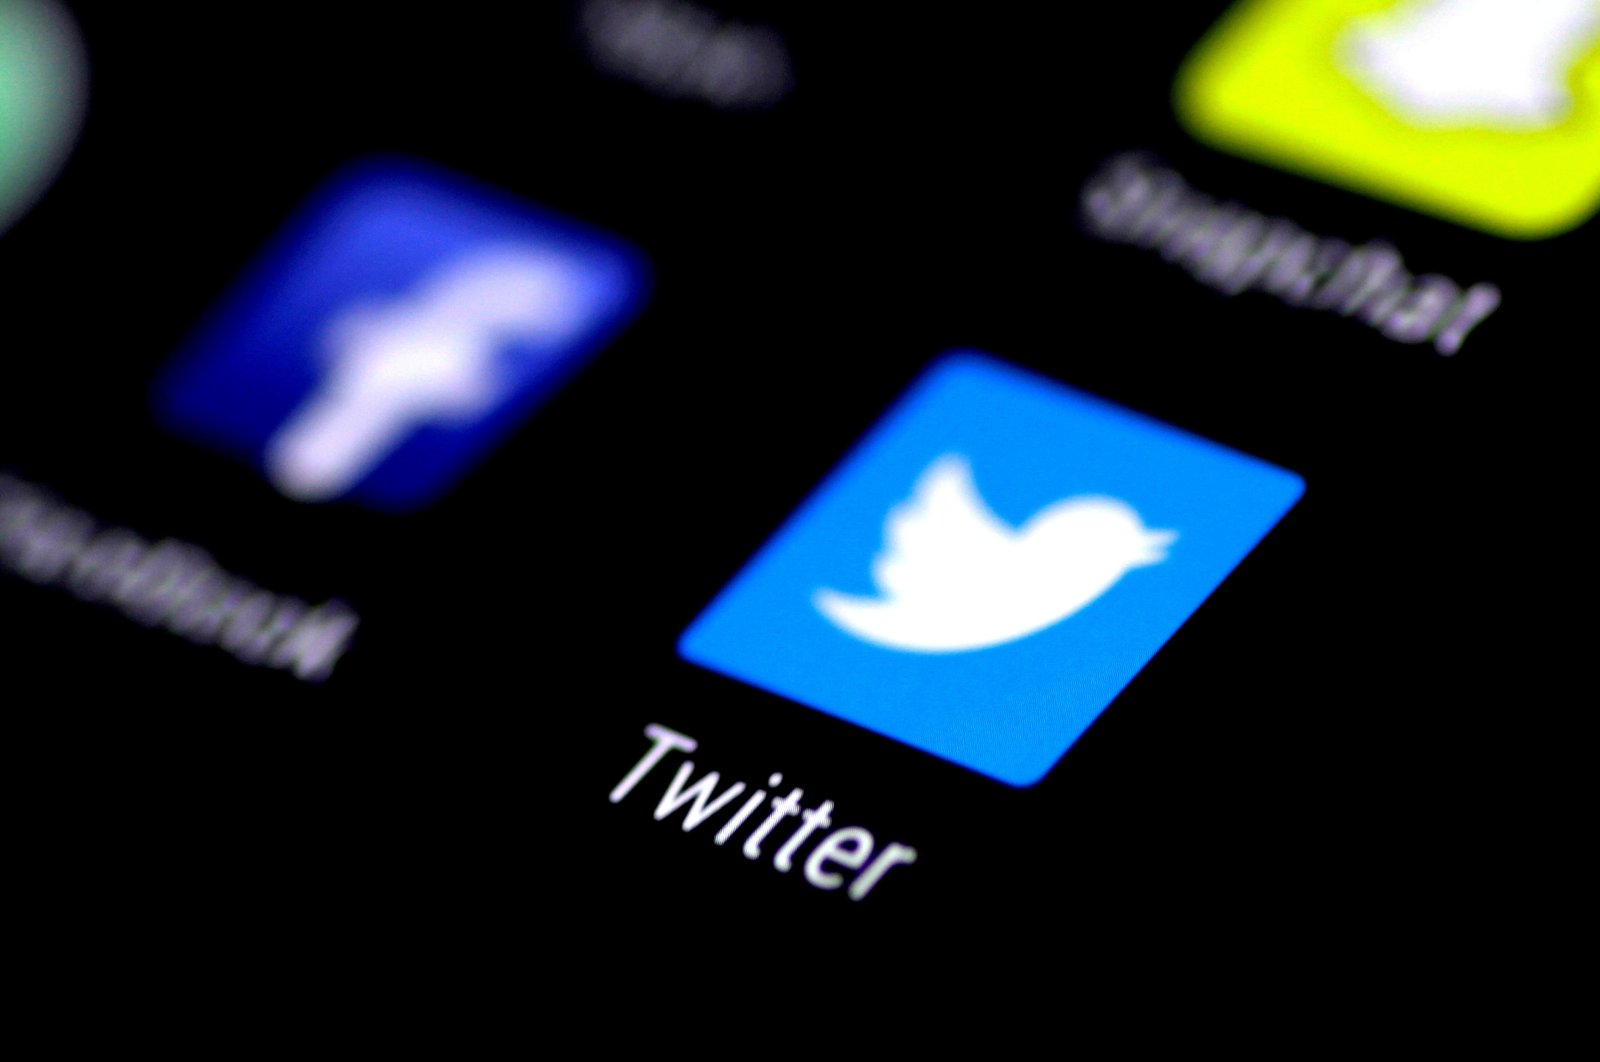 The Twitter application is seen on a phone screen, Aug. 3, 2017. (Reuters File Photo)